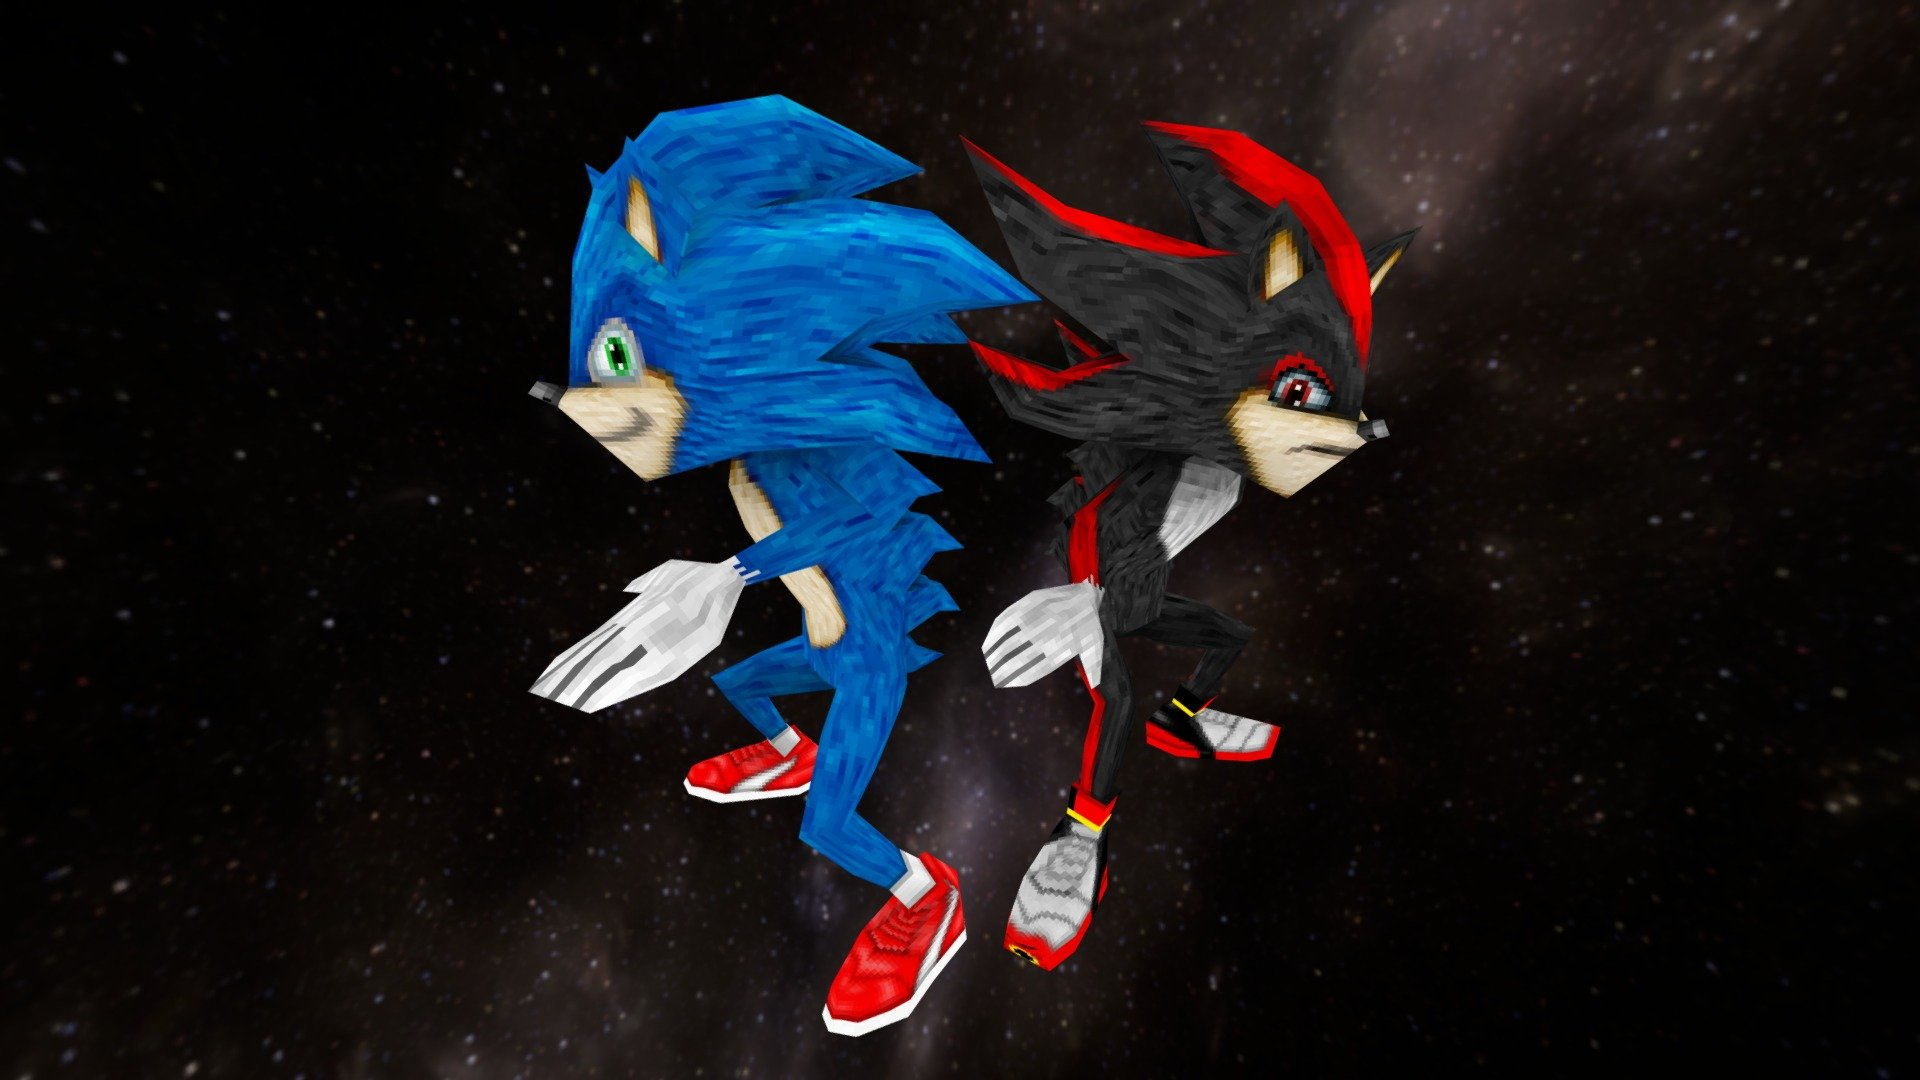 Sonic The Hedgehog 2019 Shadow Download Free 3d Model By The Regressor The Regressor 770bbaf Sketchfab